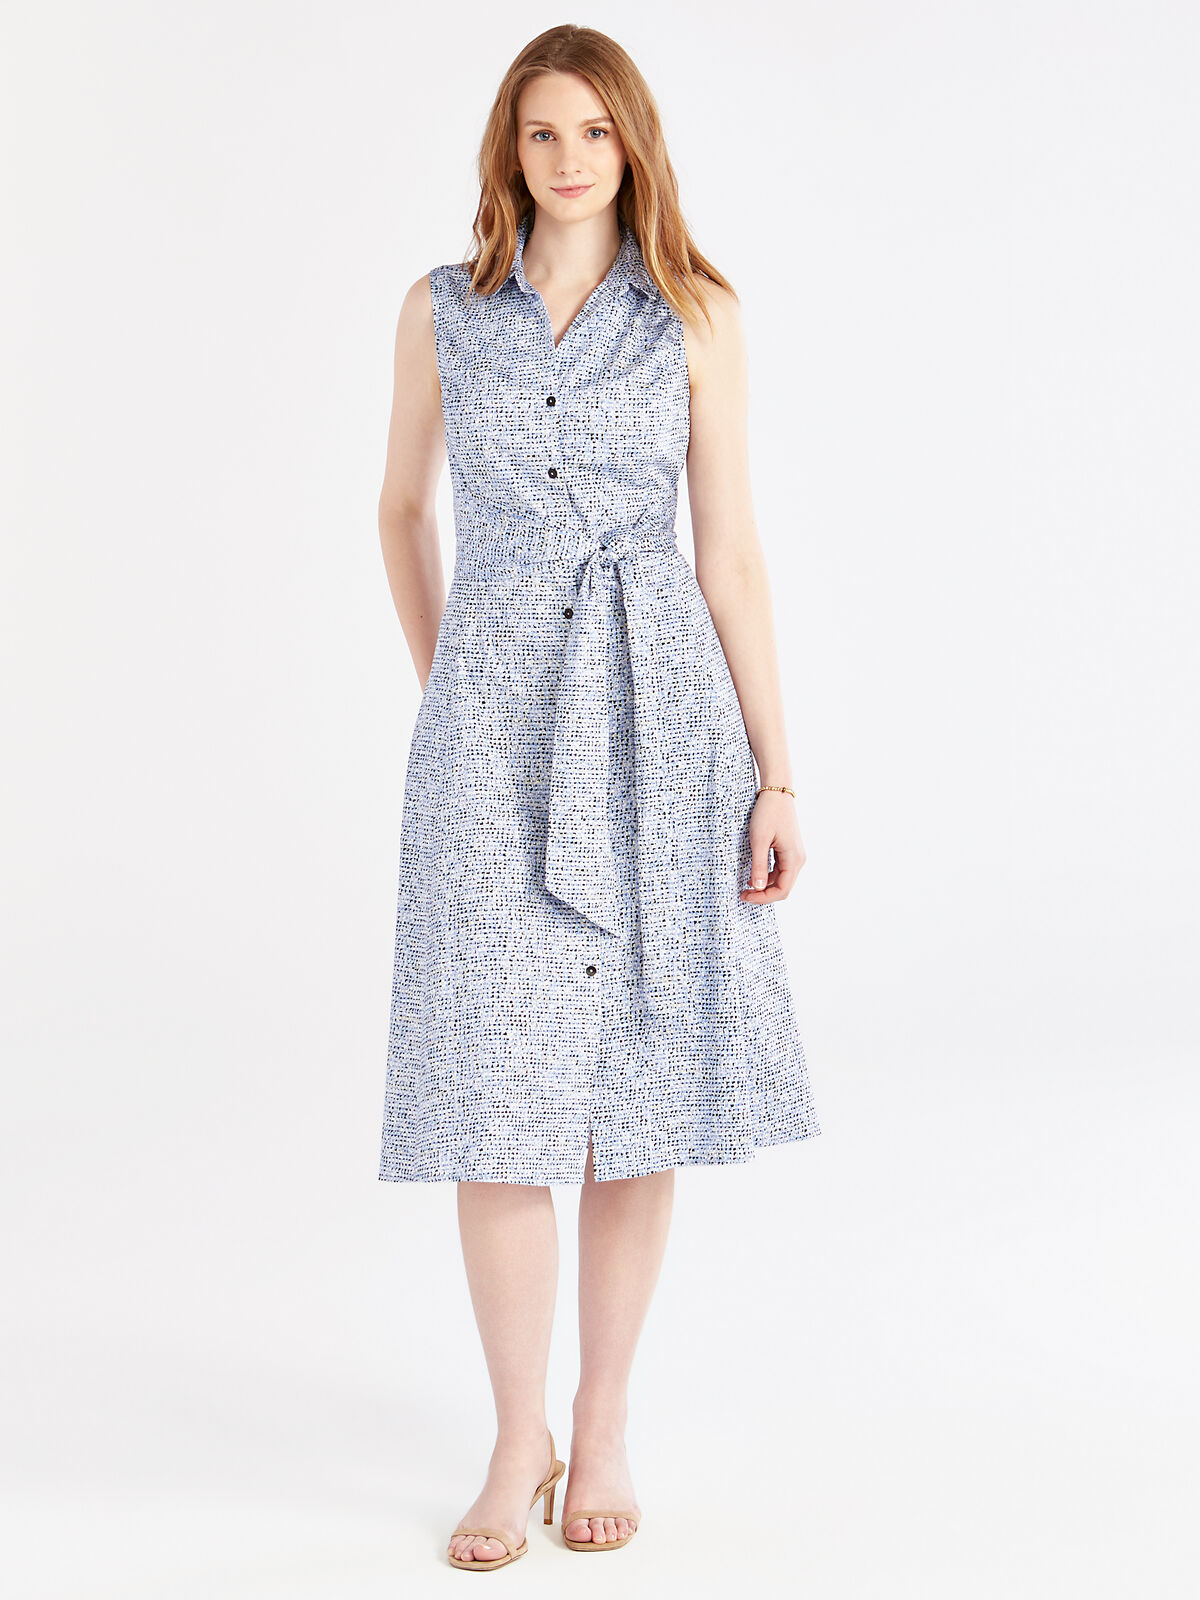 Naples Shirt Dress